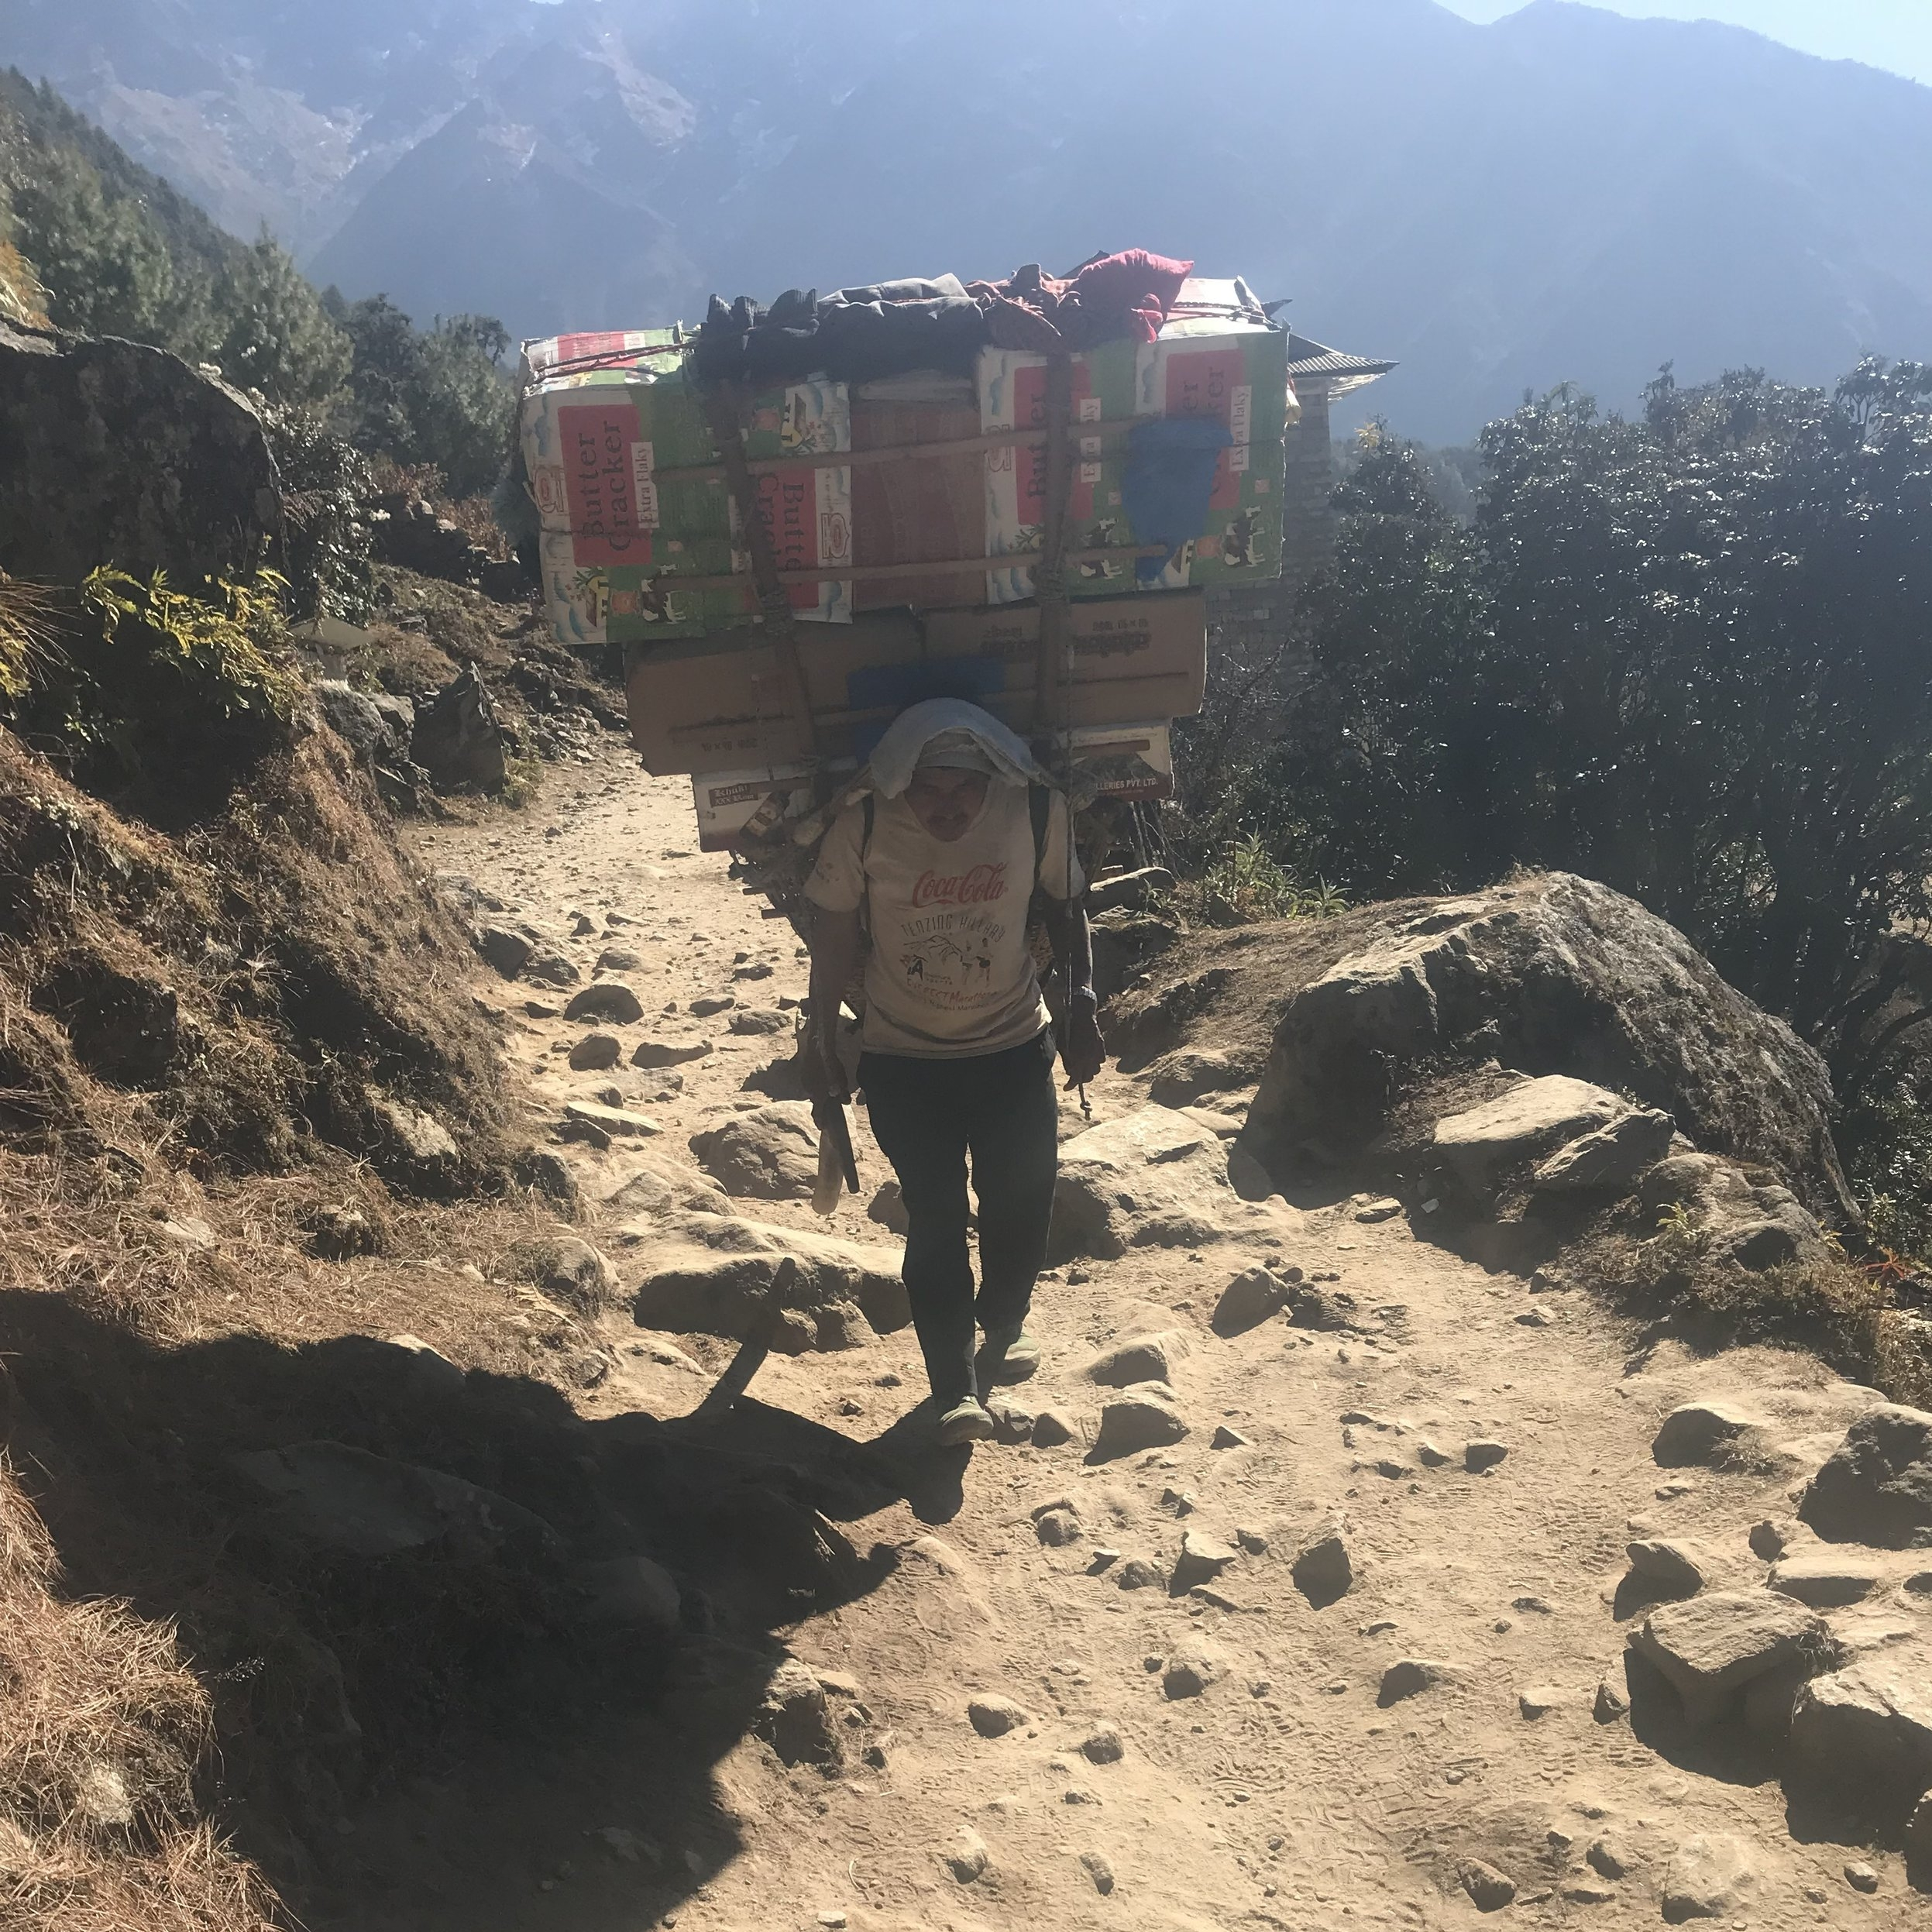 Our Mission - Hike for Help is a non-profit organization established in 2011, focused on implementing self-sustaining service projects in impoverished regions of Nepal. With this goal in mind, Hike for Help coordinates cultural treks to the Khumbu valley to provide support for local villages in their pursuit of development.Learn More